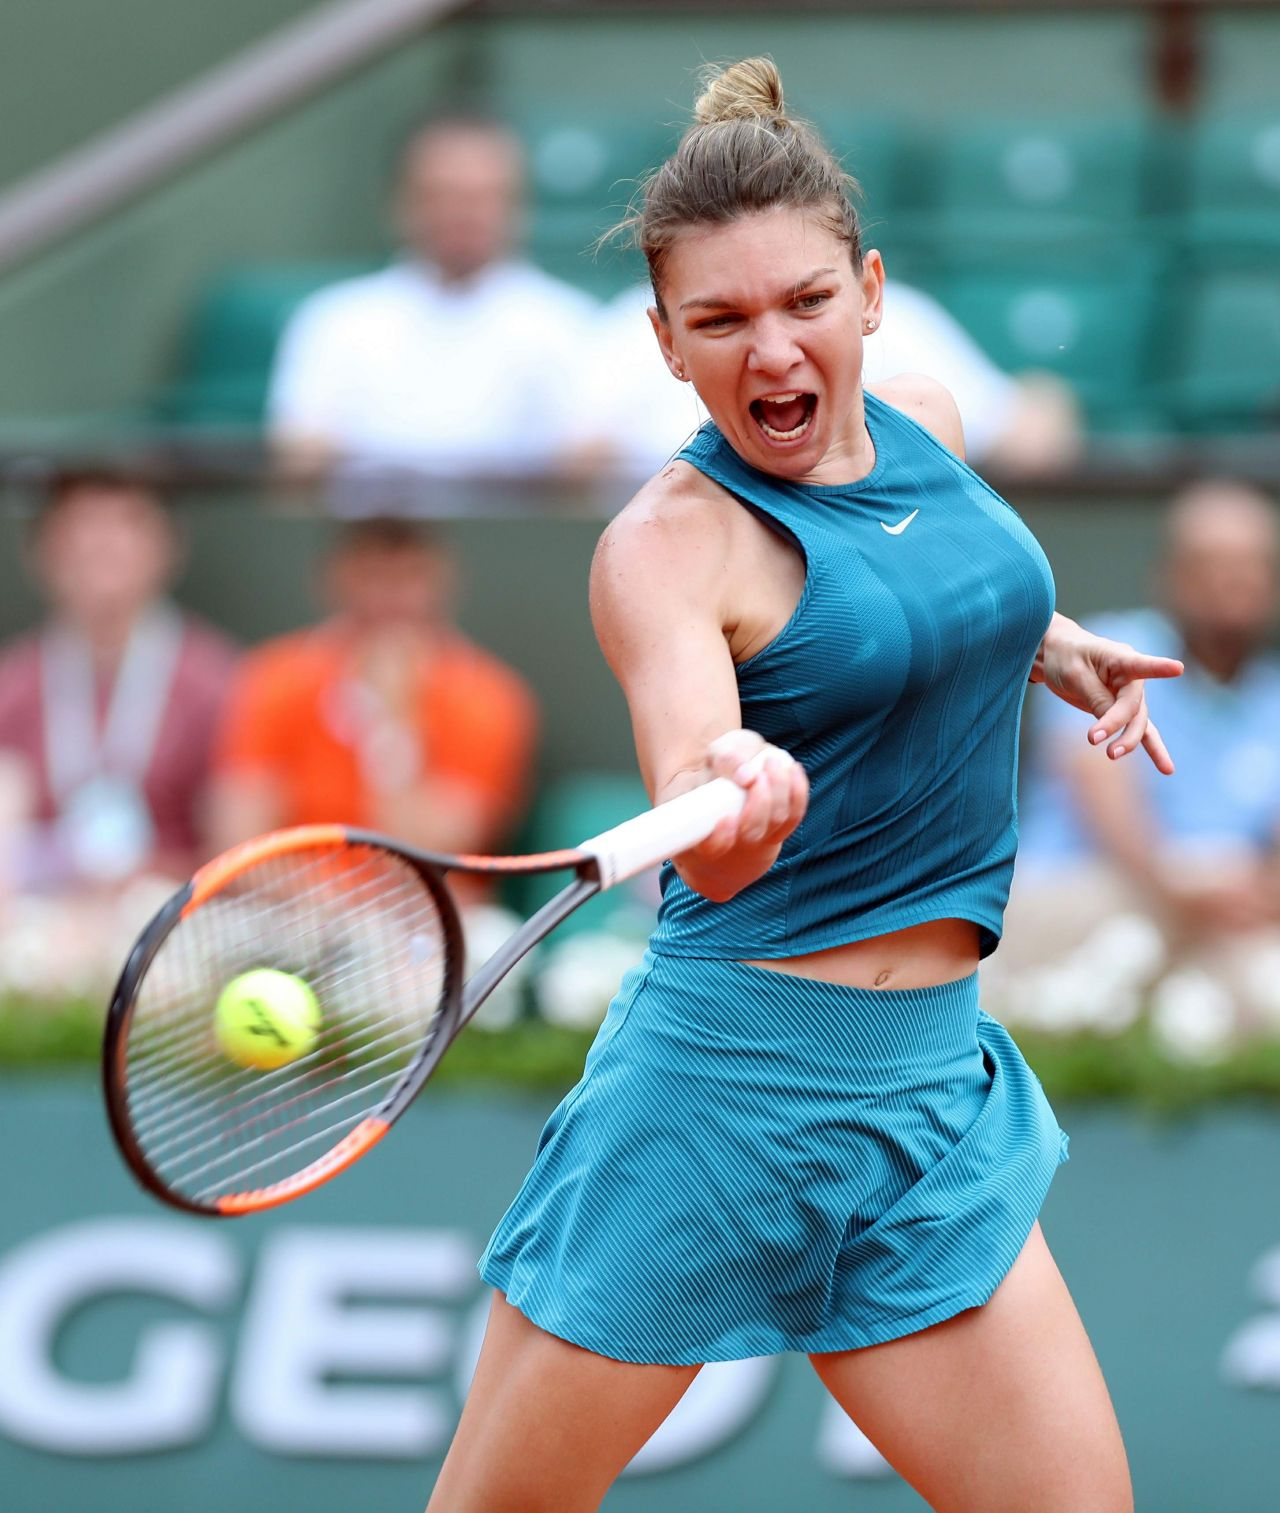 Simona Halep - China Open Tennis 2017 in Beijing 10/06/2017